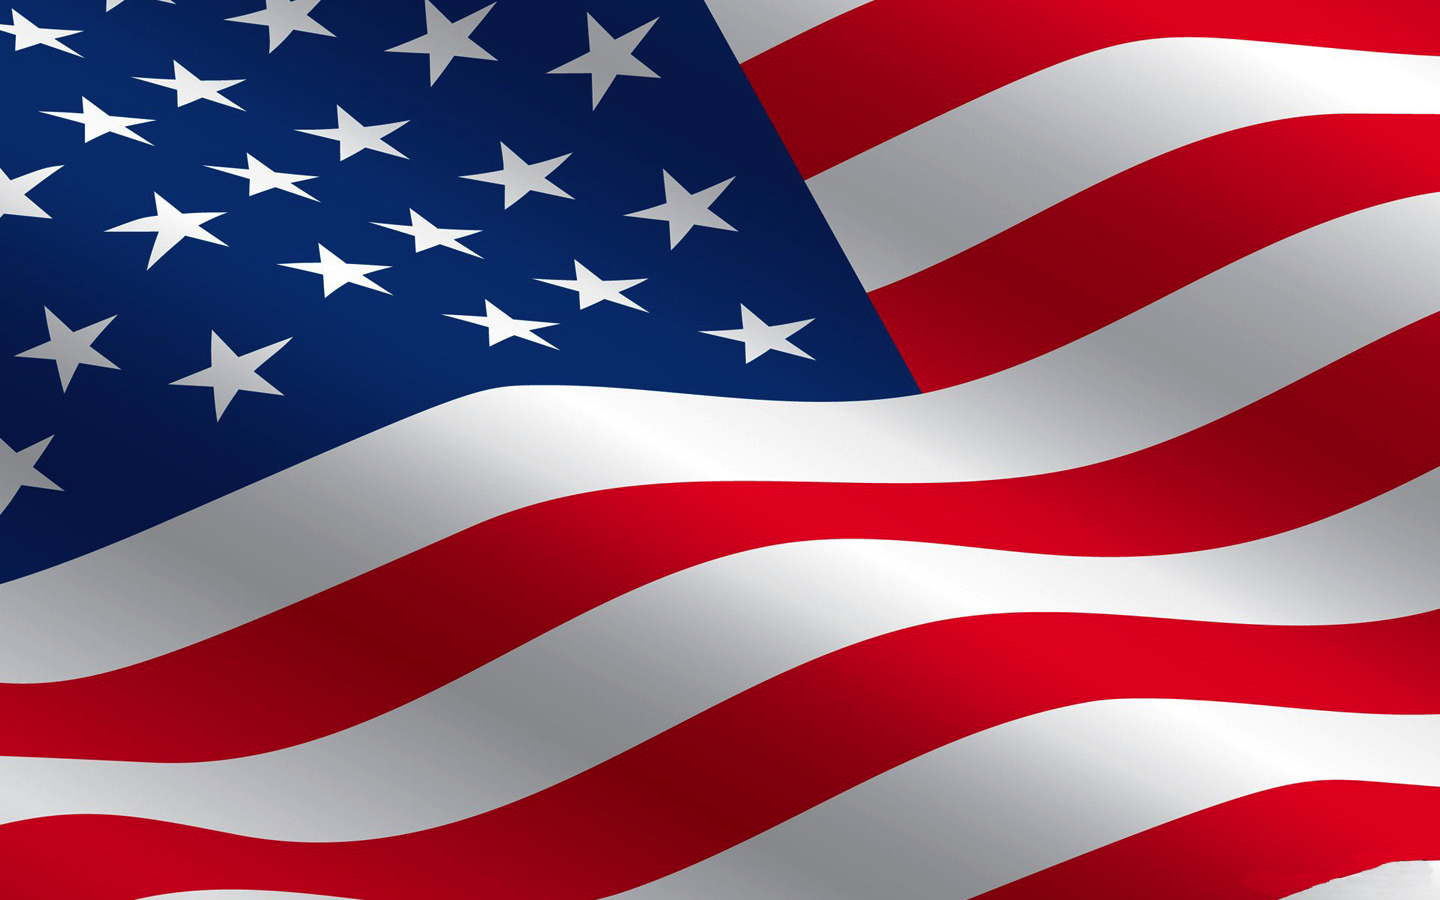 American Flag Wallpapers Free